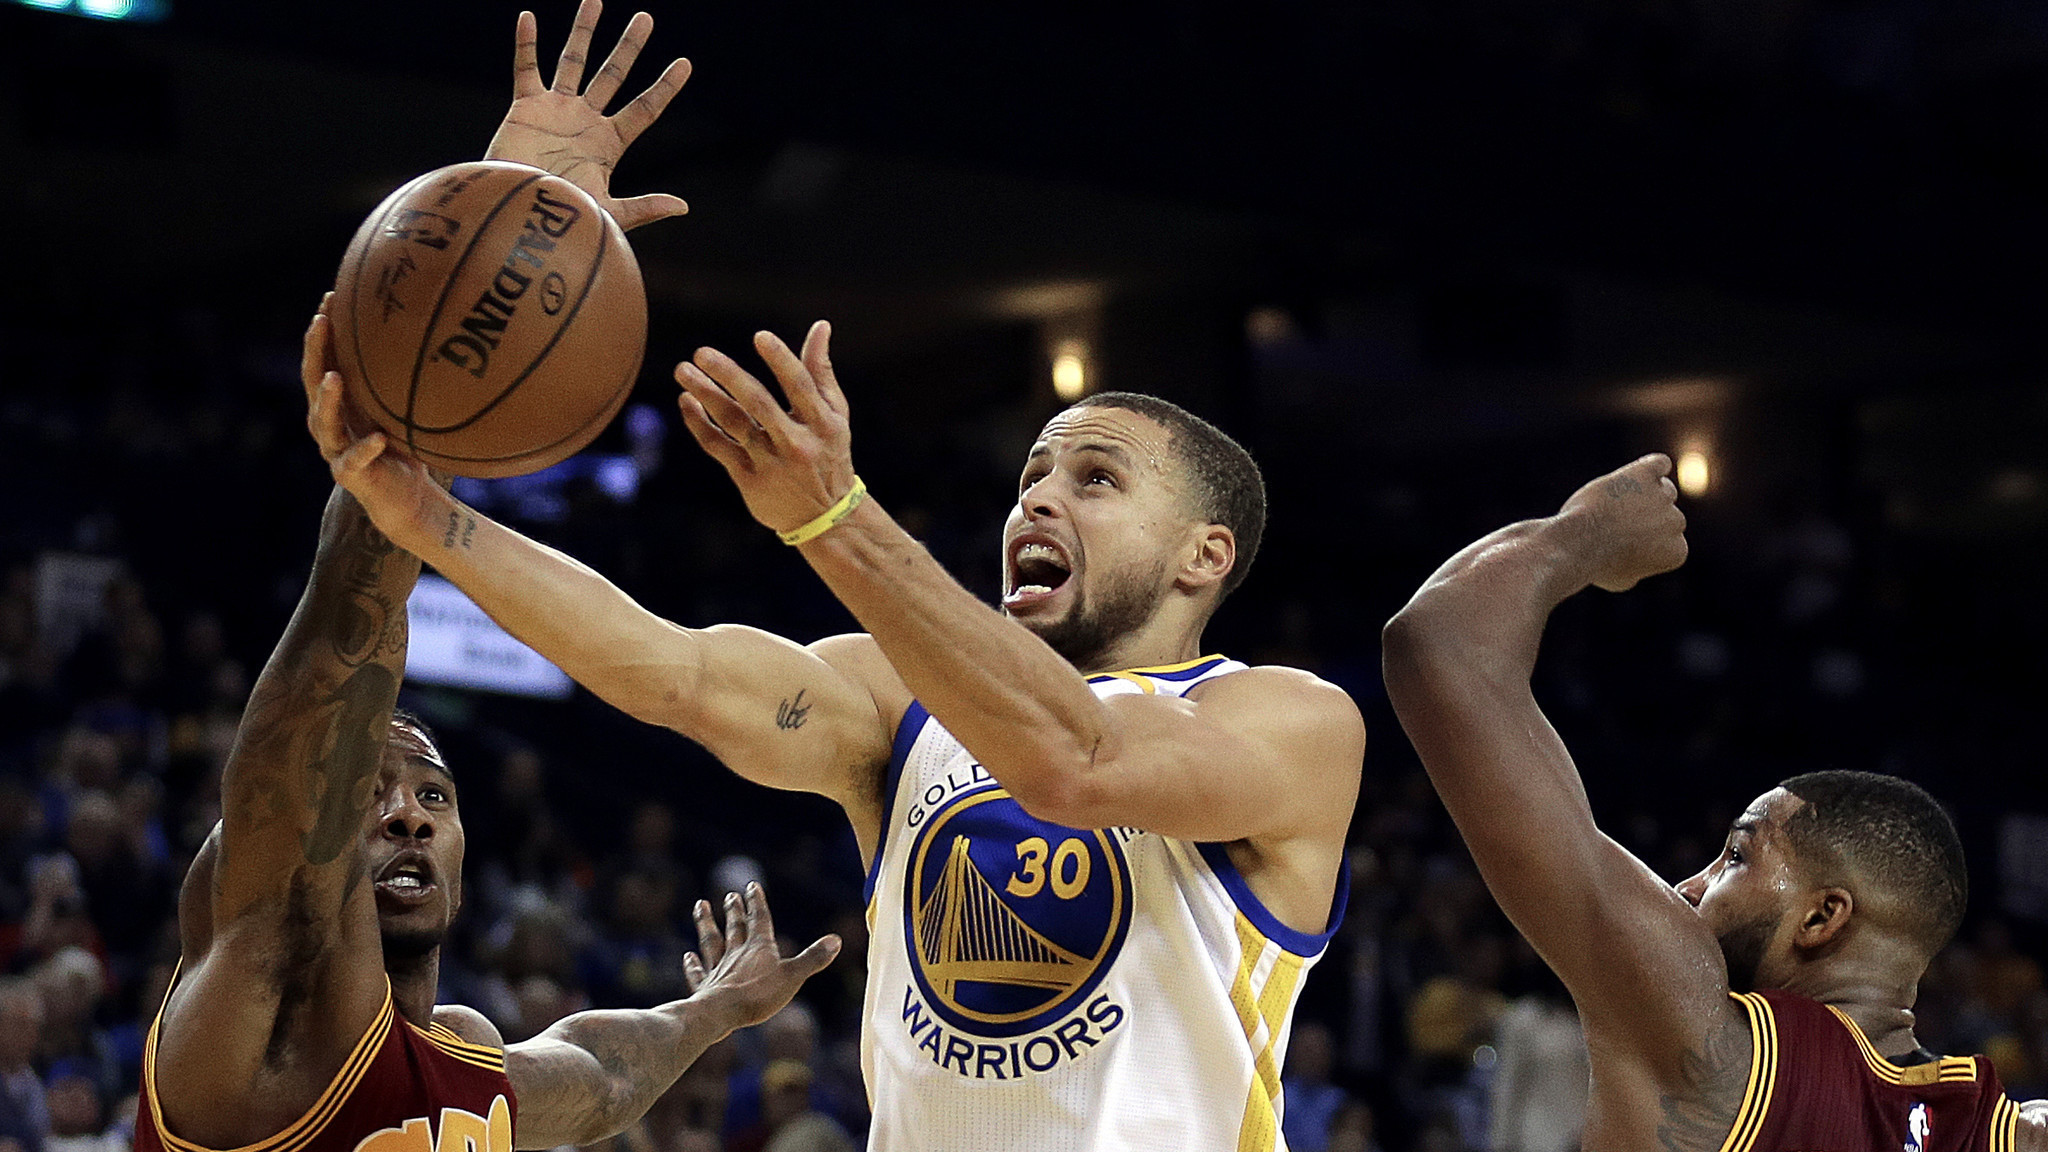 NBA roundup: Warriors win the latest clash with the Cavaliers, 126-91